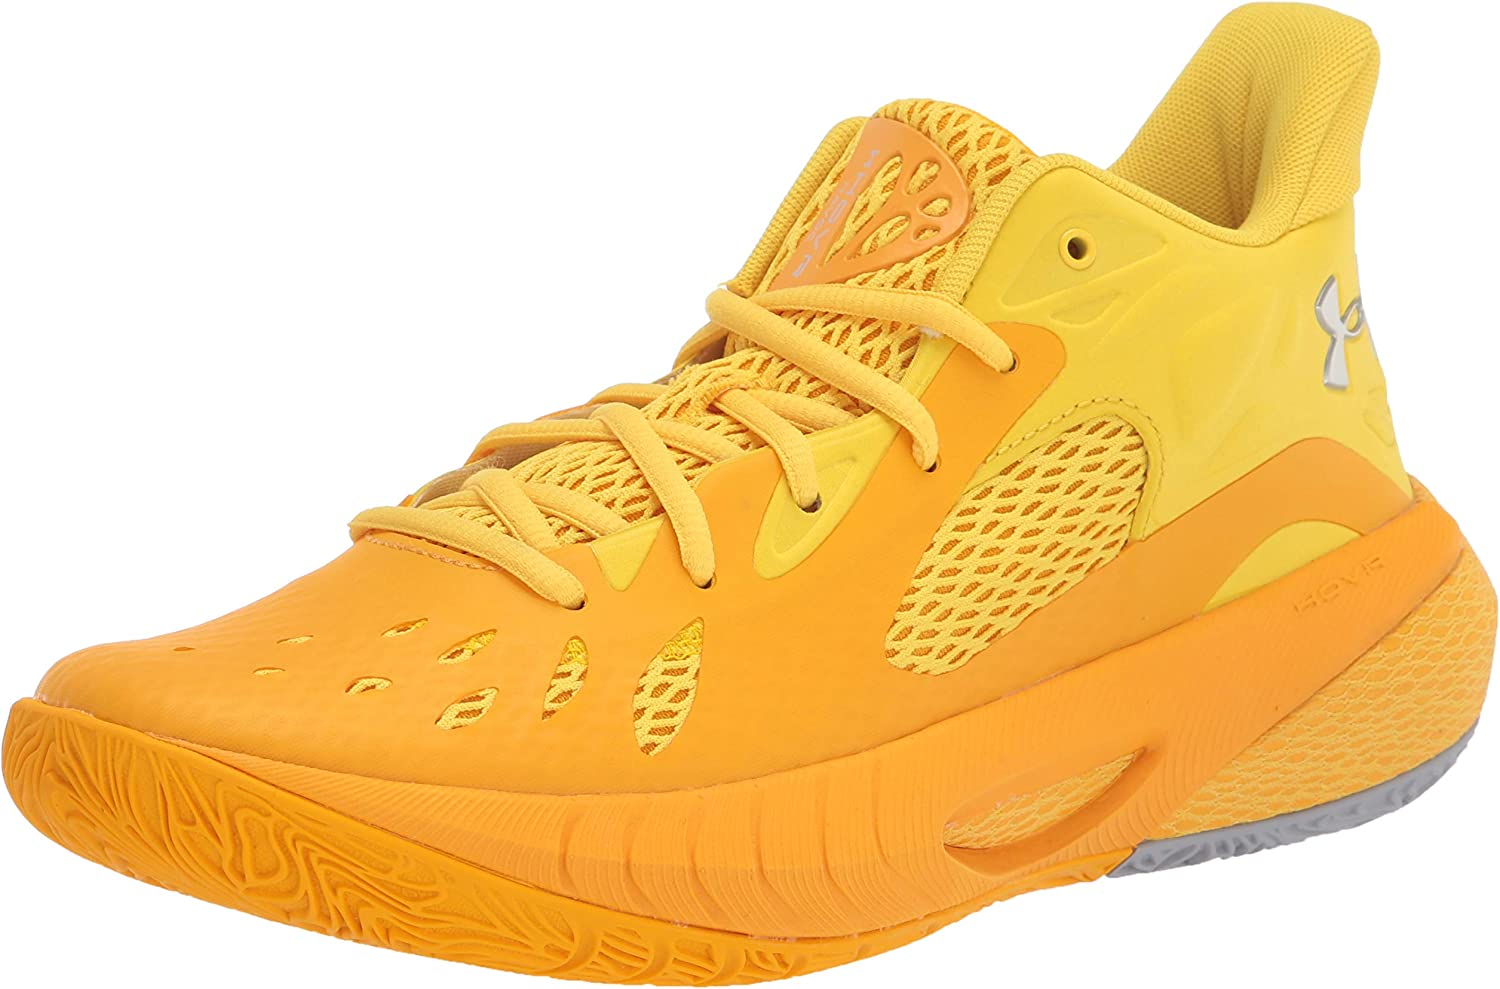 Under Armour Unisex HOVR Limited time for free shipping Havoc Brand Cheap Sale Venue Steeltown Gold Basketball 3 Shoe